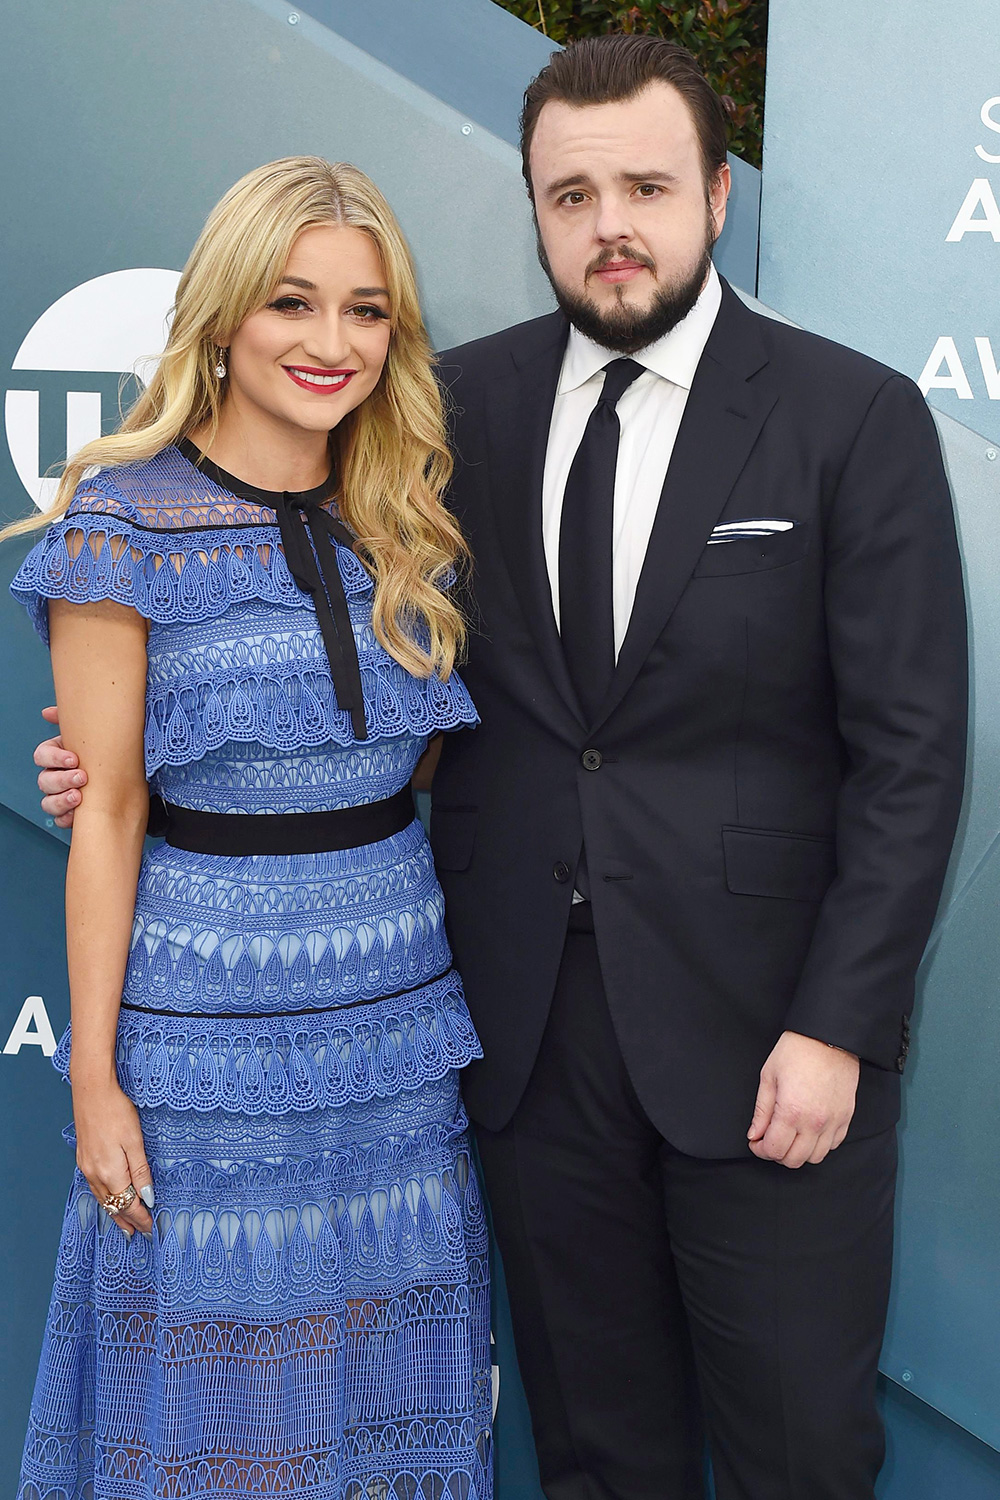 Rebecca April May, left, and John Bradley arrive at the 26th annual Screen Actors Guild Awards at the Shrine Auditorium & Expo Hall, in Los Angeles 26th Annual SAG Awards - Arrivals, Los Angeles, USA - 19 Jan 2020